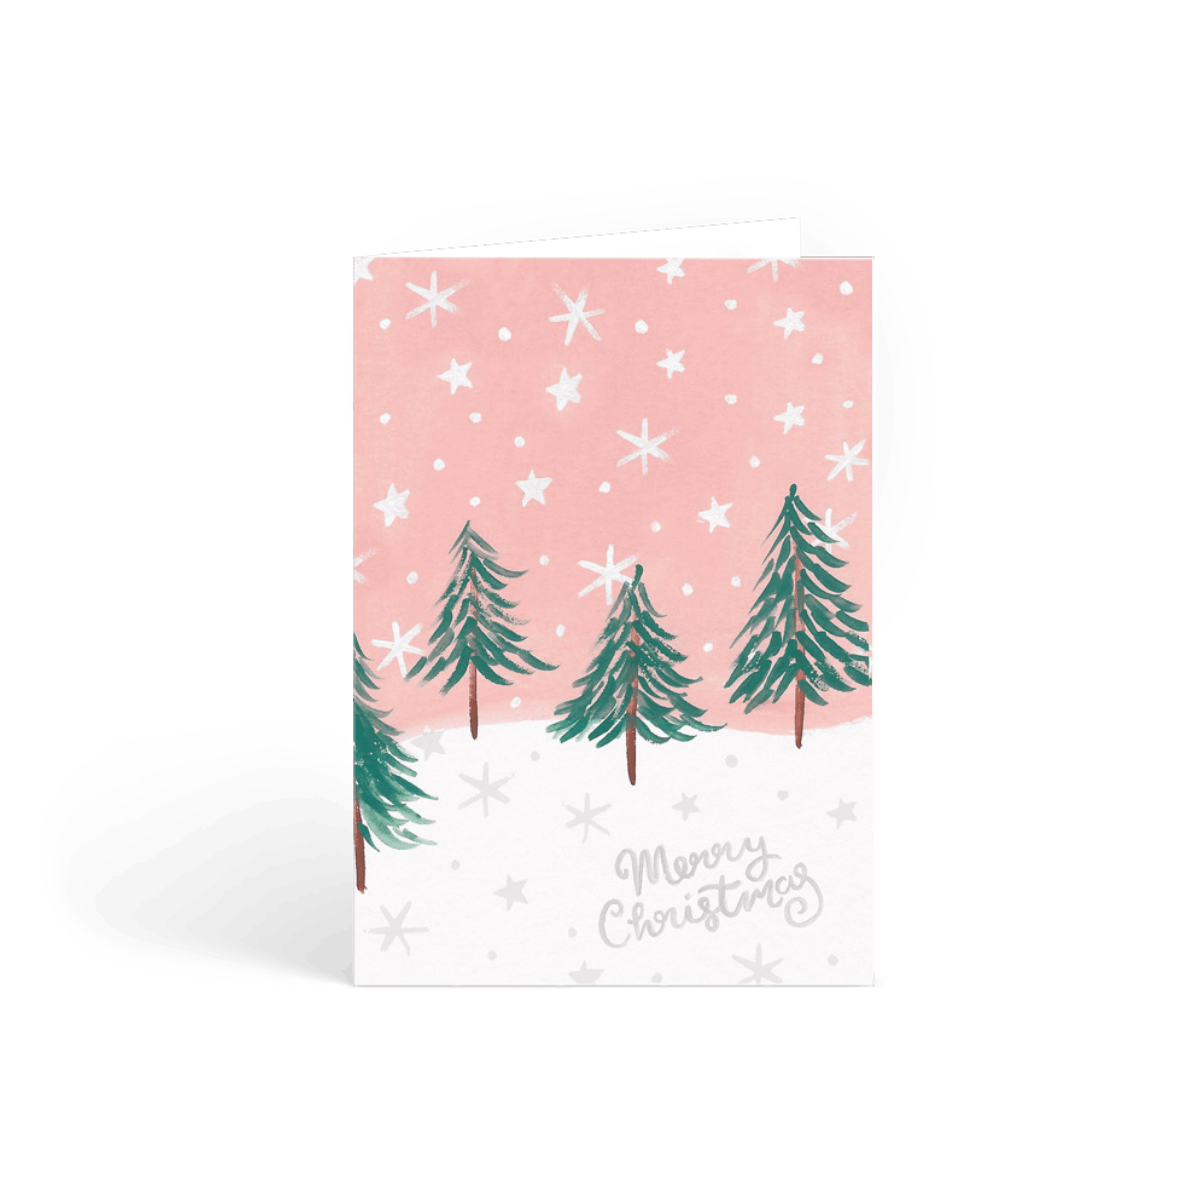 Https%3a%2f%2fwww.papier.com%2fproduct image%2f30186%2f2%2fchristmas fir 7613 front 1541092305.png?ixlib=rb 1.1